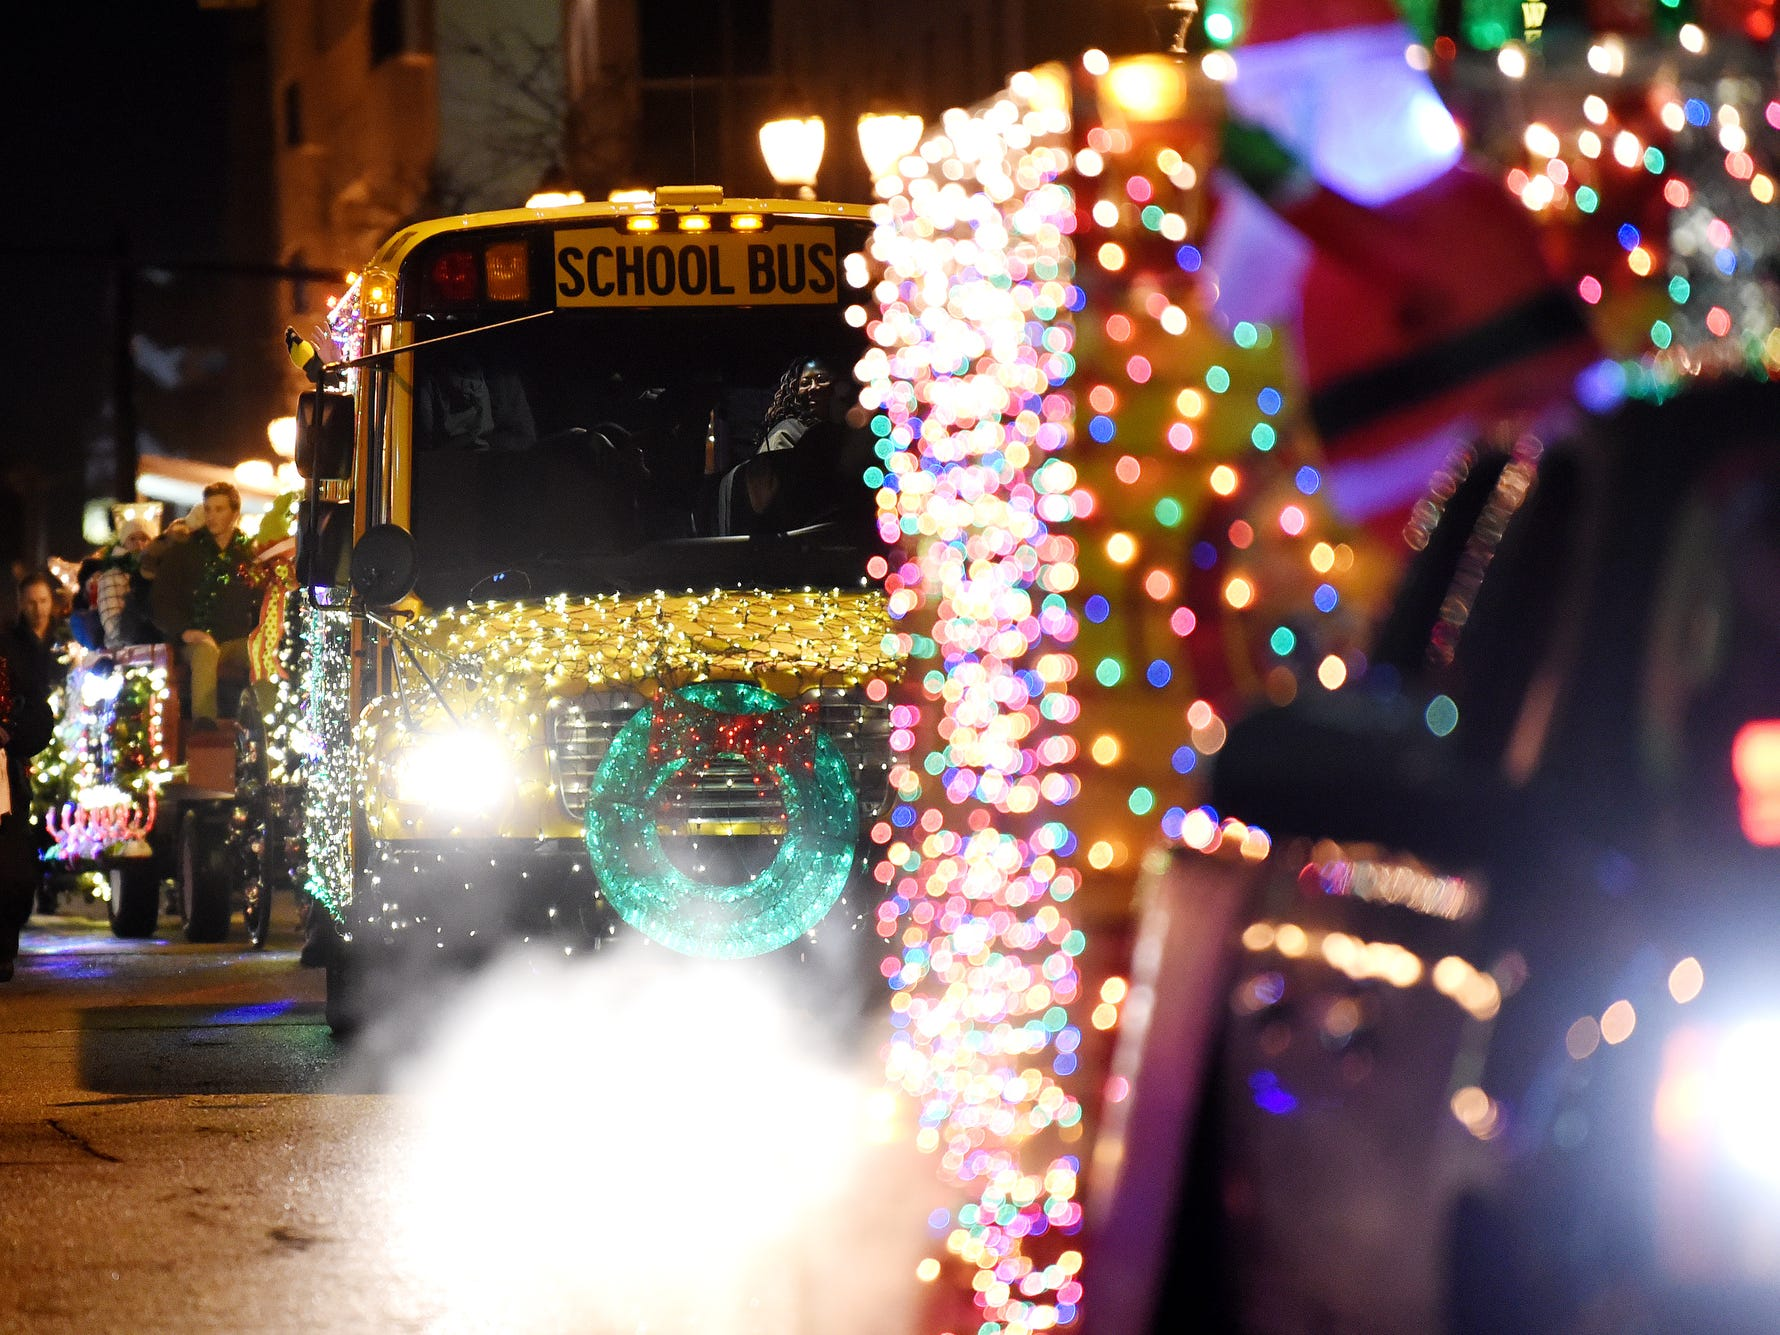 Floats covered in light make their way along the route during the Silver Bells in the City Electric Light Parade on Friday, Nov. 16, 2018, in downtown Lansing.